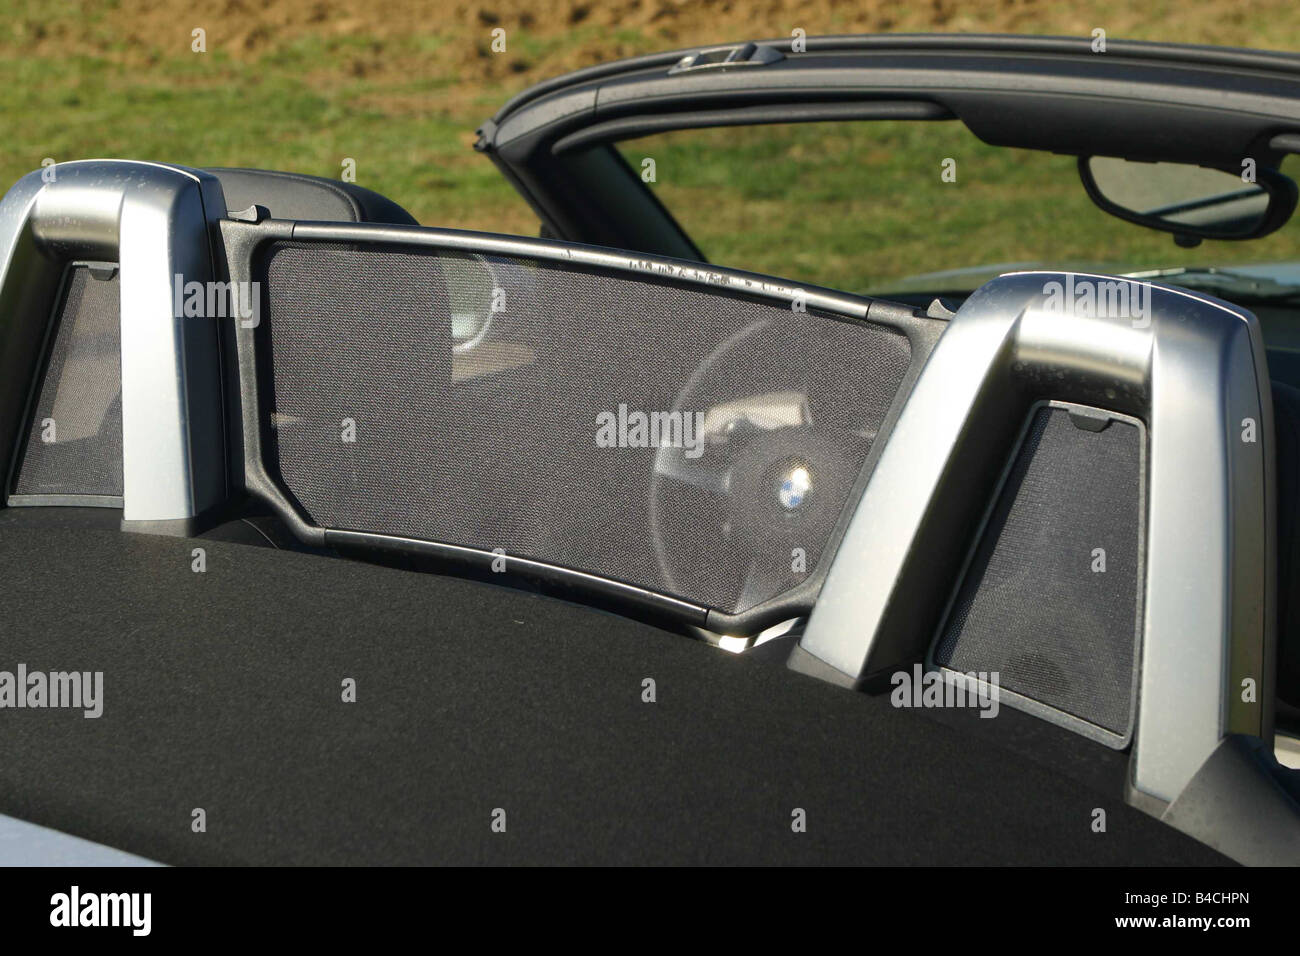 Convertible Bmw Stock Photos Amp Convertible Bmw Stock